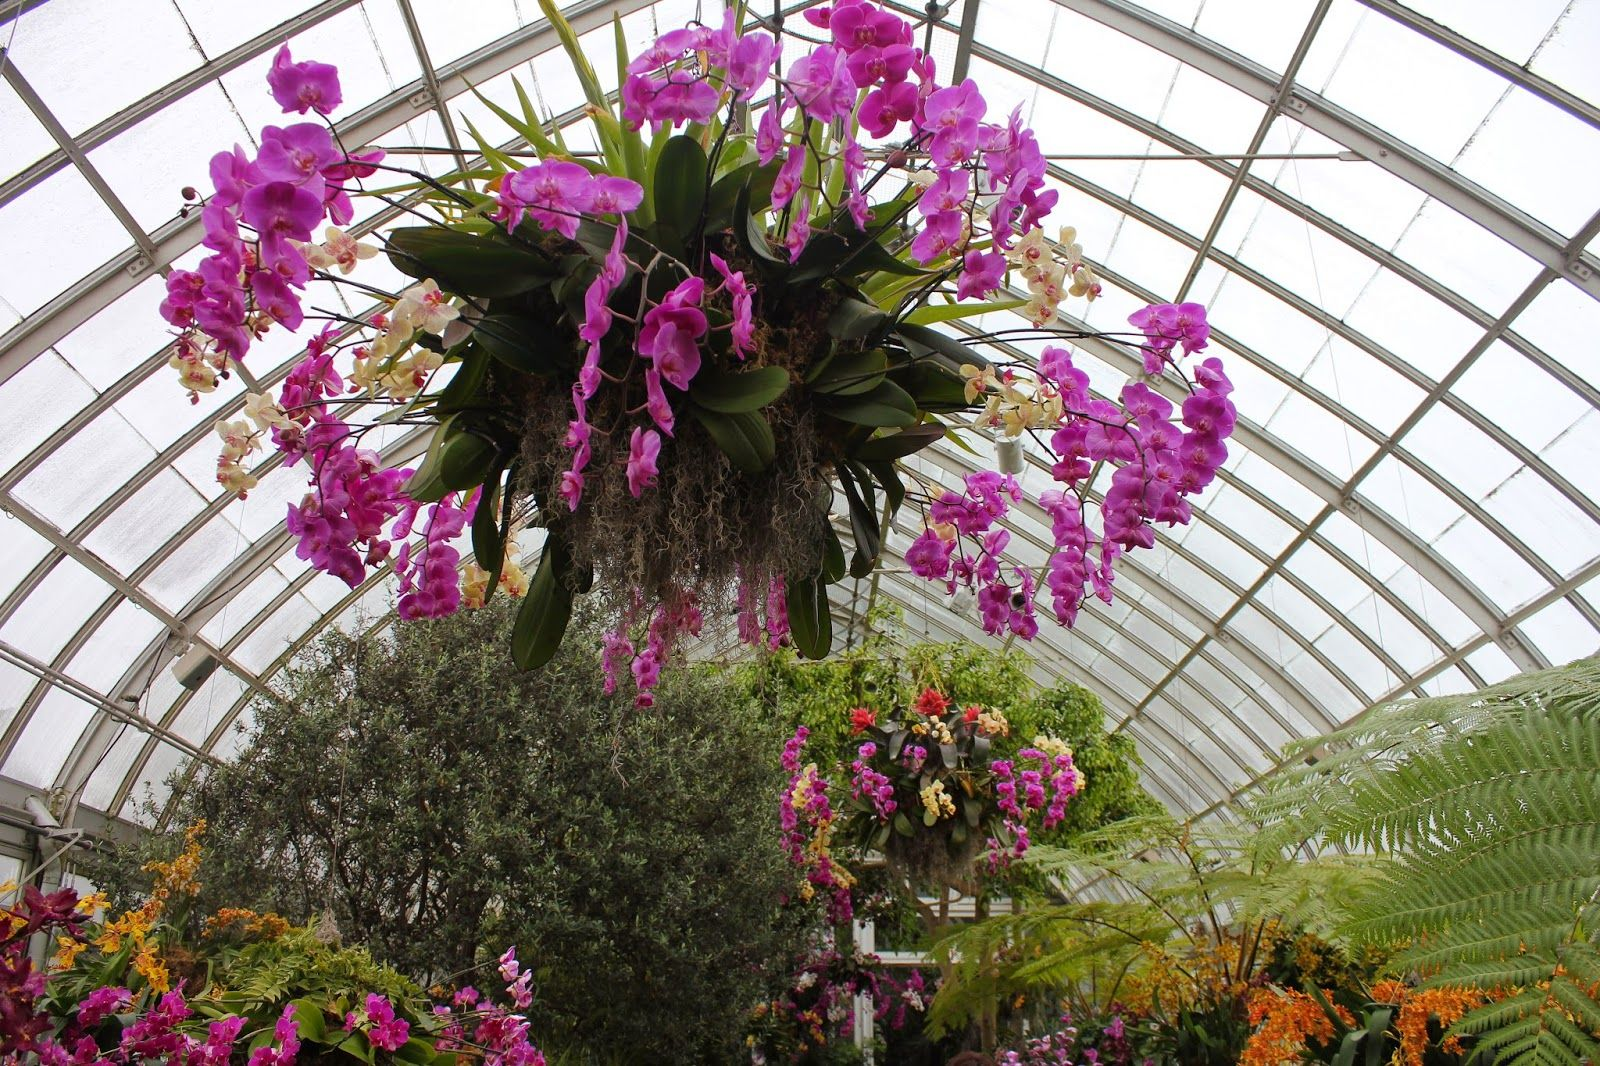 Orchid Chandeliers At NY Botanical Garden. Orchid Chandeliers At NY Botanical  Garden Spring Seems To